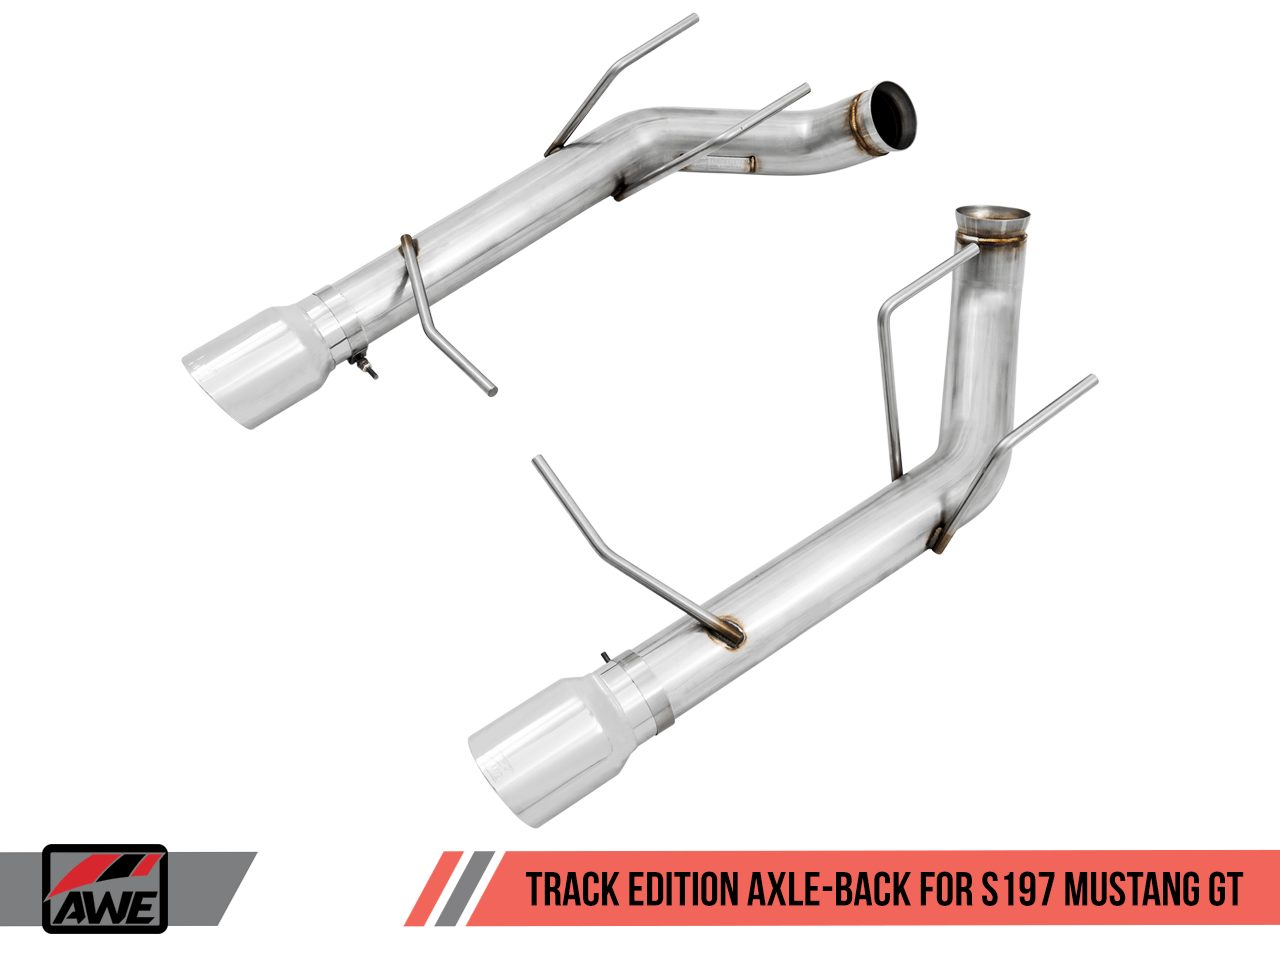 awe track axle back exhaust s197 mustang